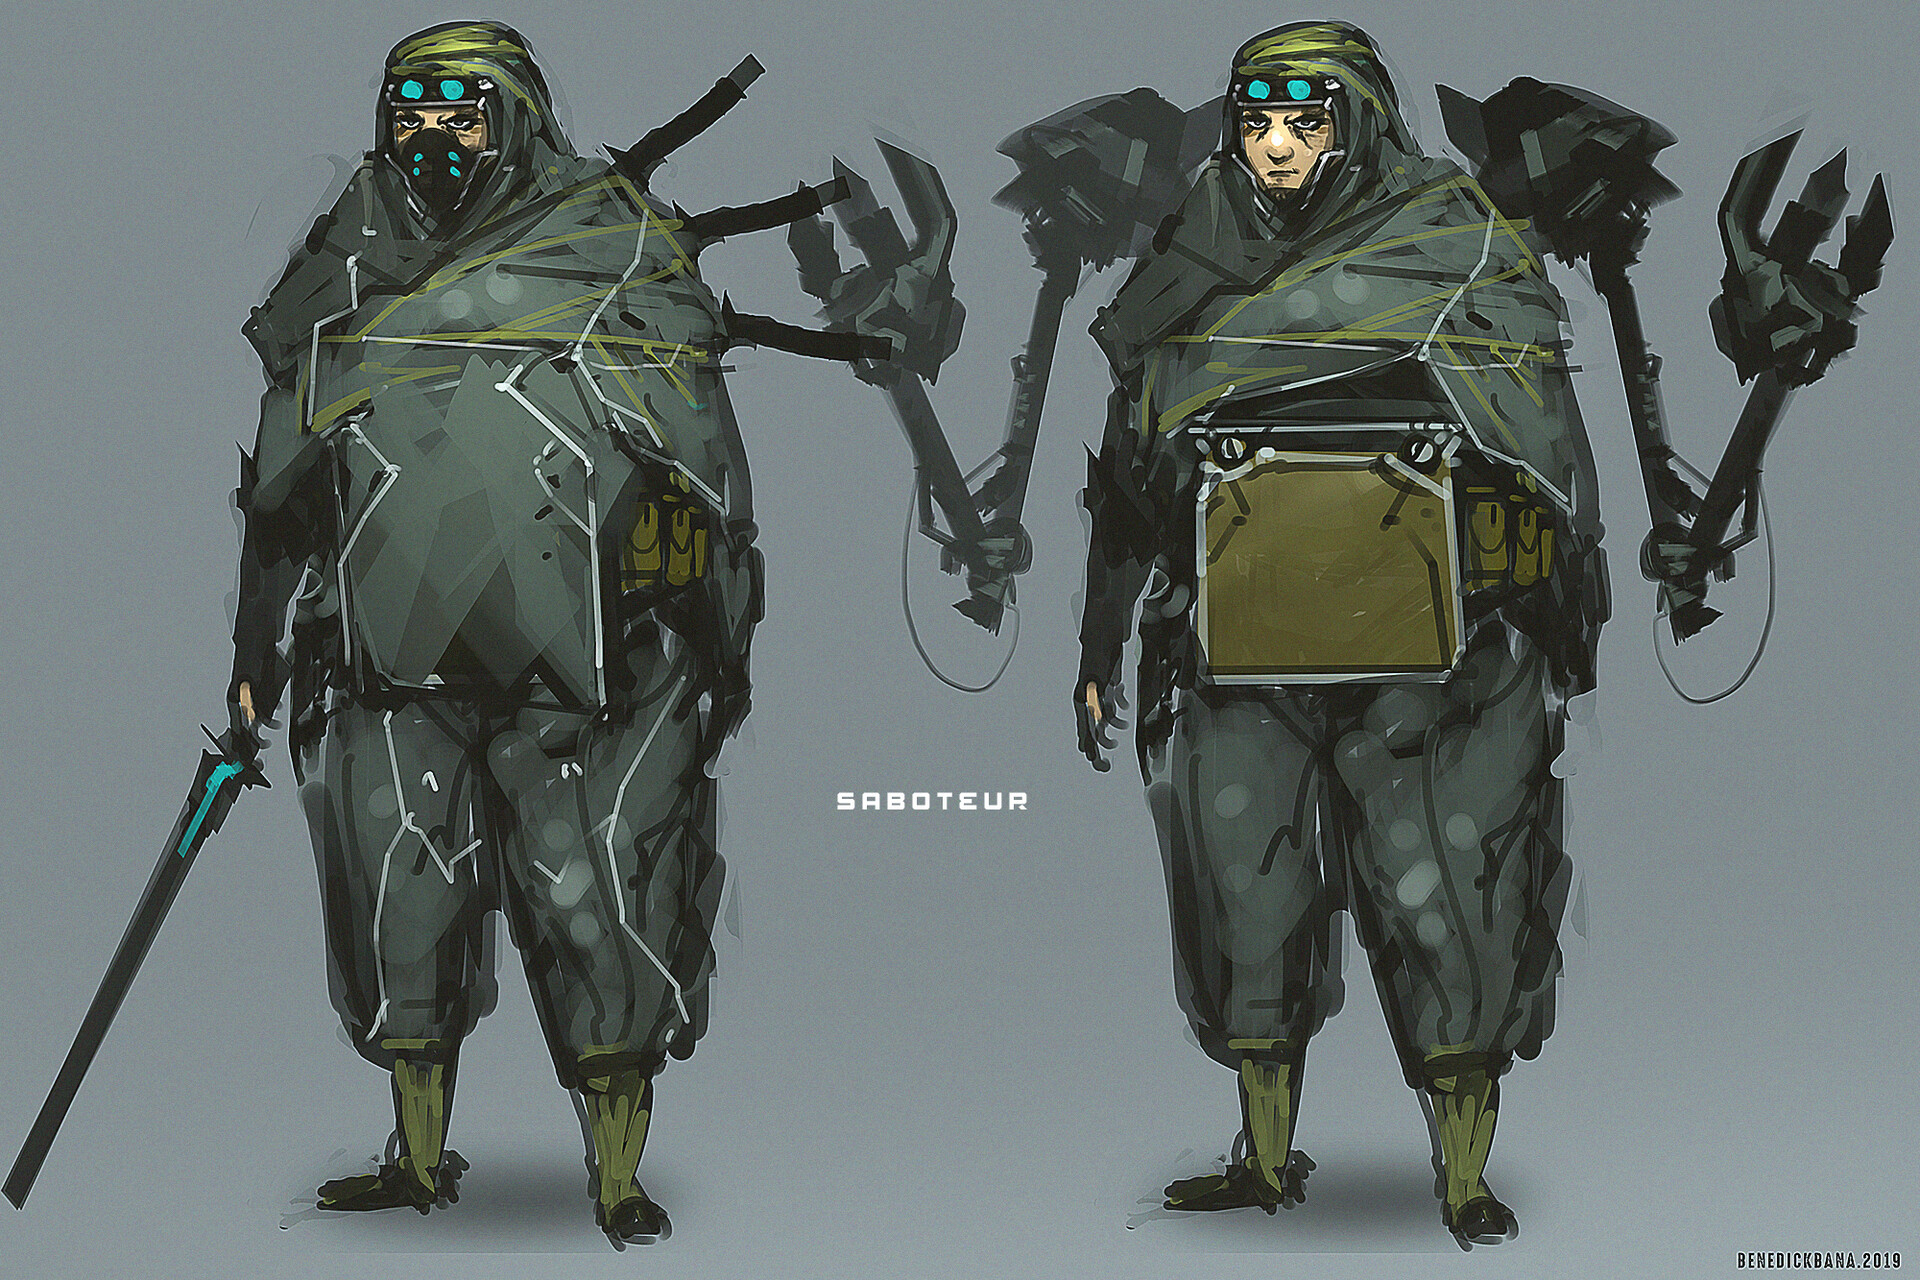 Saboteur character design - soldier unit